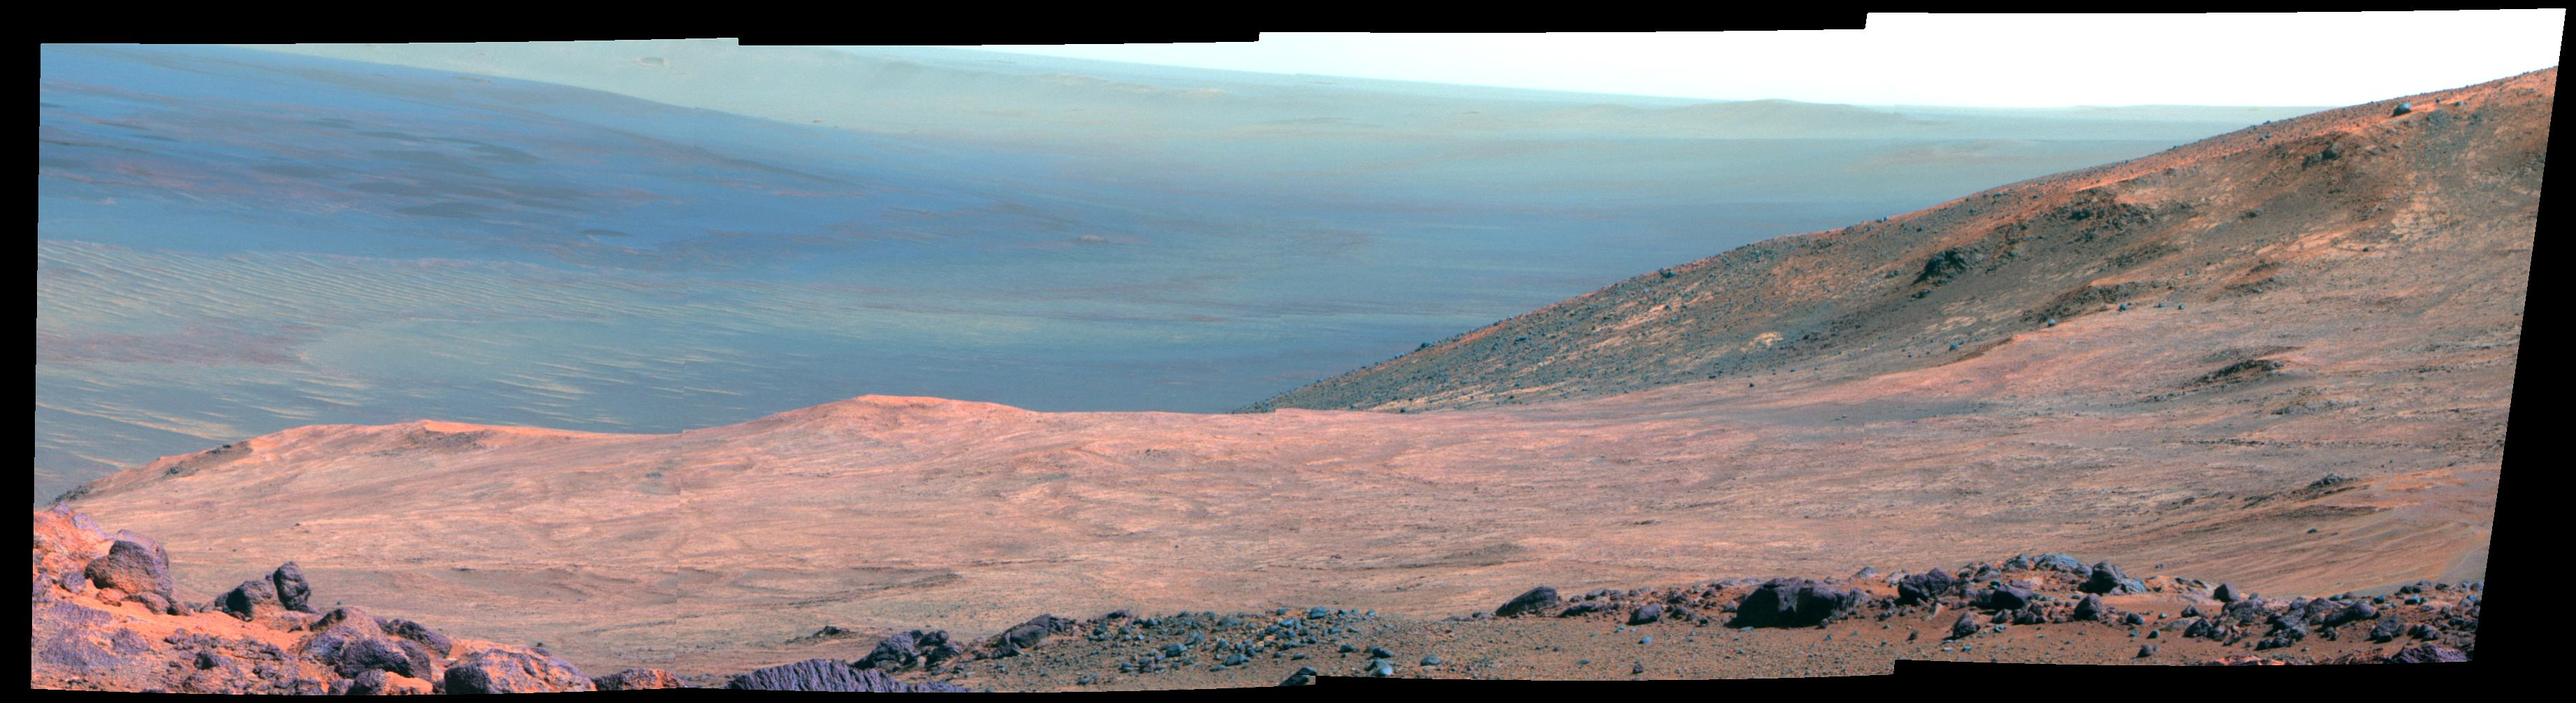 Opportunity Mars Rover's View of Marathon Valley